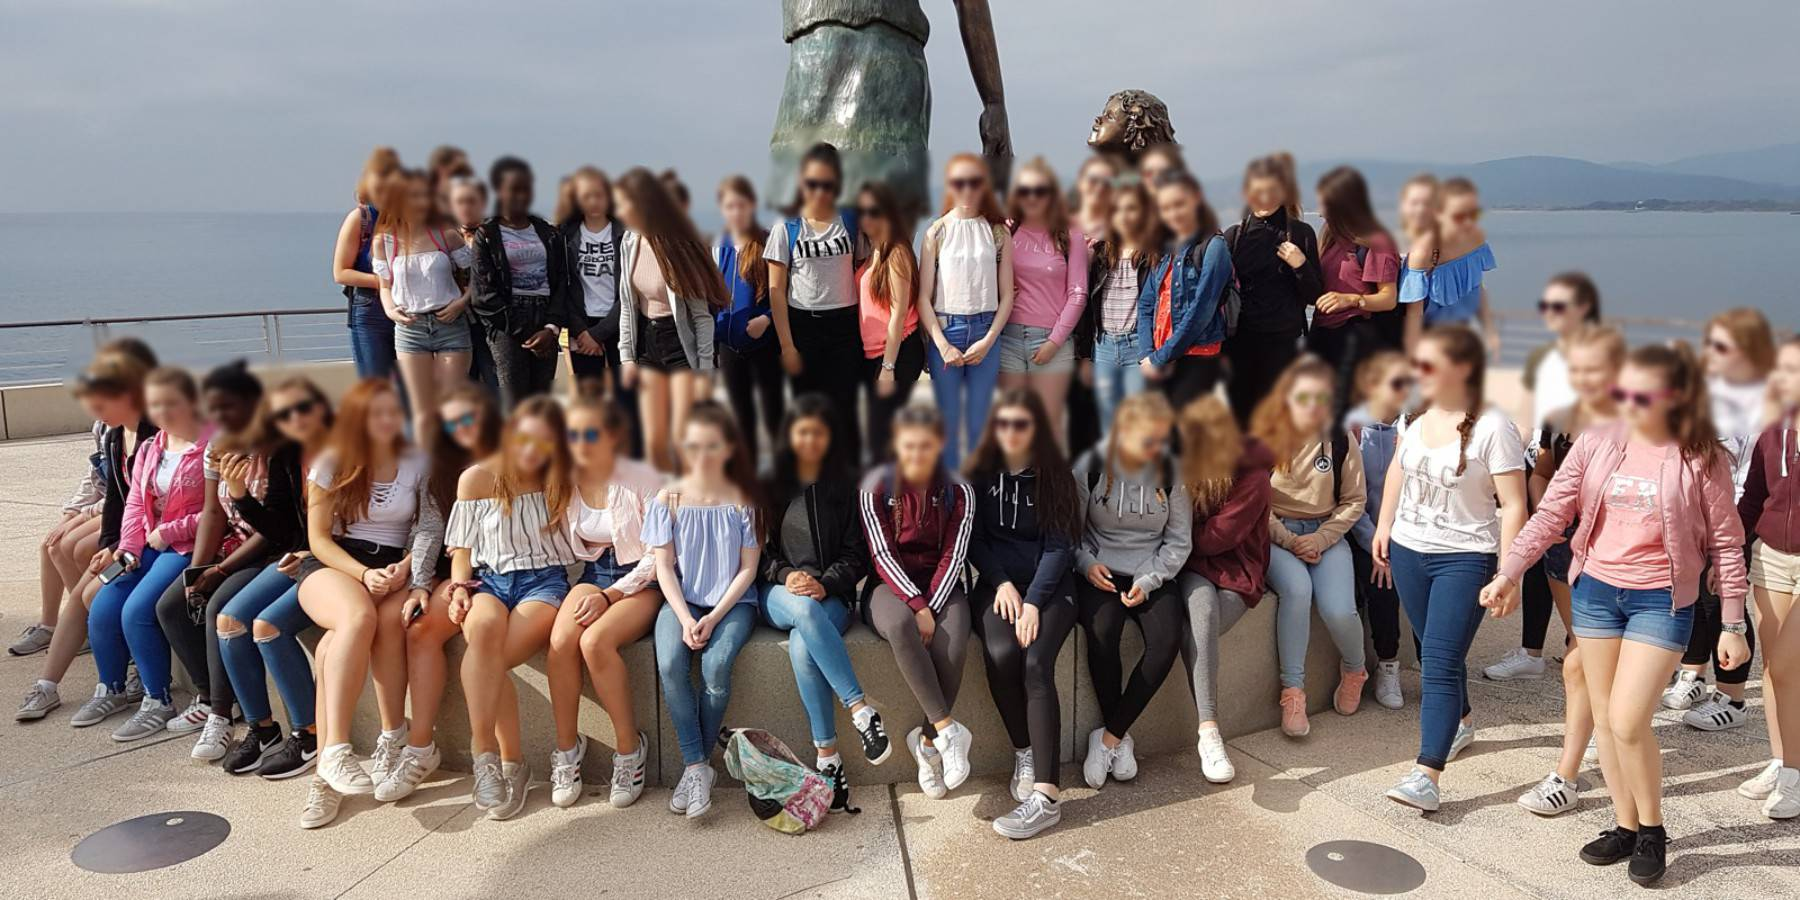 Teenagers in Saint-Raphaël